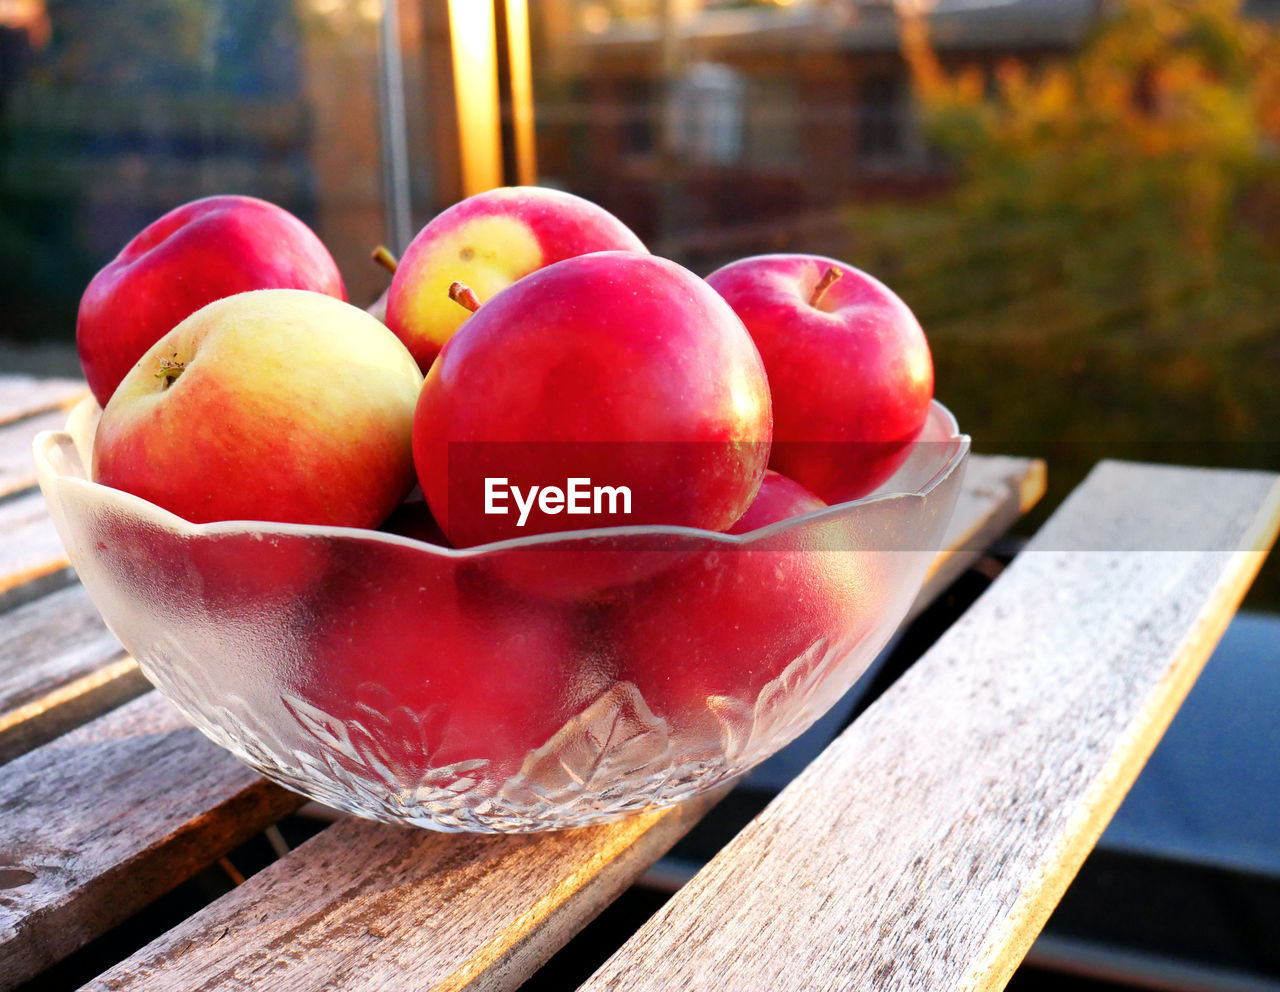 food and drink, food, healthy eating, fruit, freshness, table, wellbeing, red, wood - material, focus on foreground, close-up, no people, day, still life, apple - fruit, outdoors, container, high angle view, nature, bench, ripe, tray